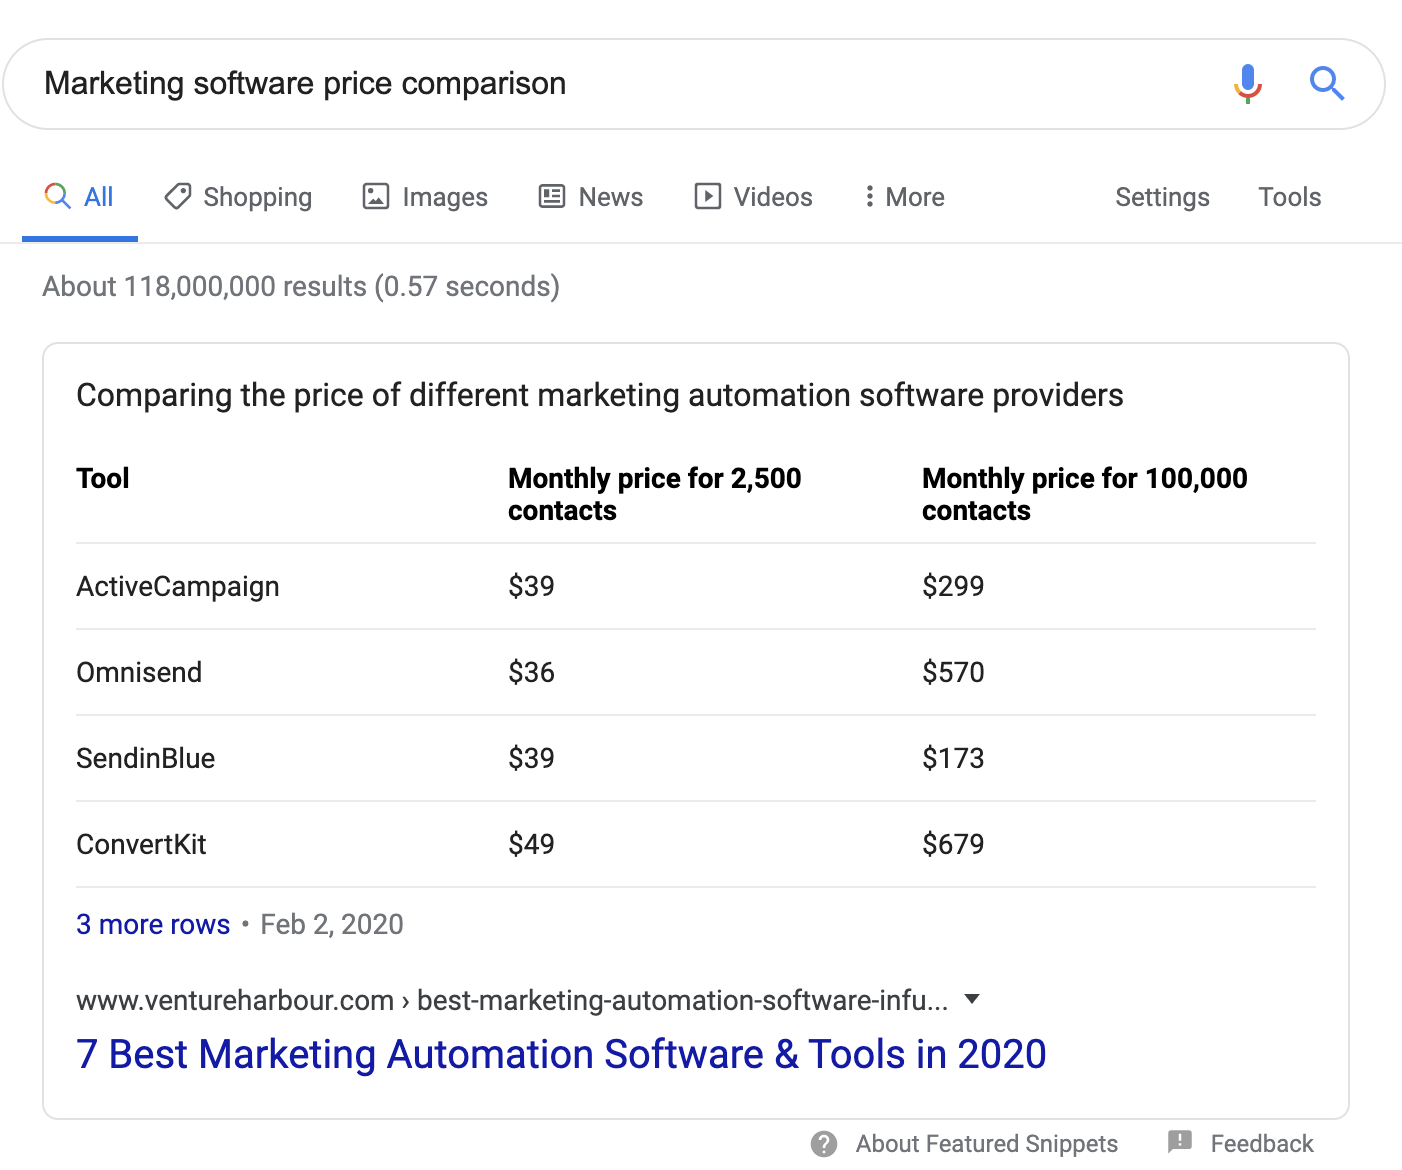 marketing software price comparison